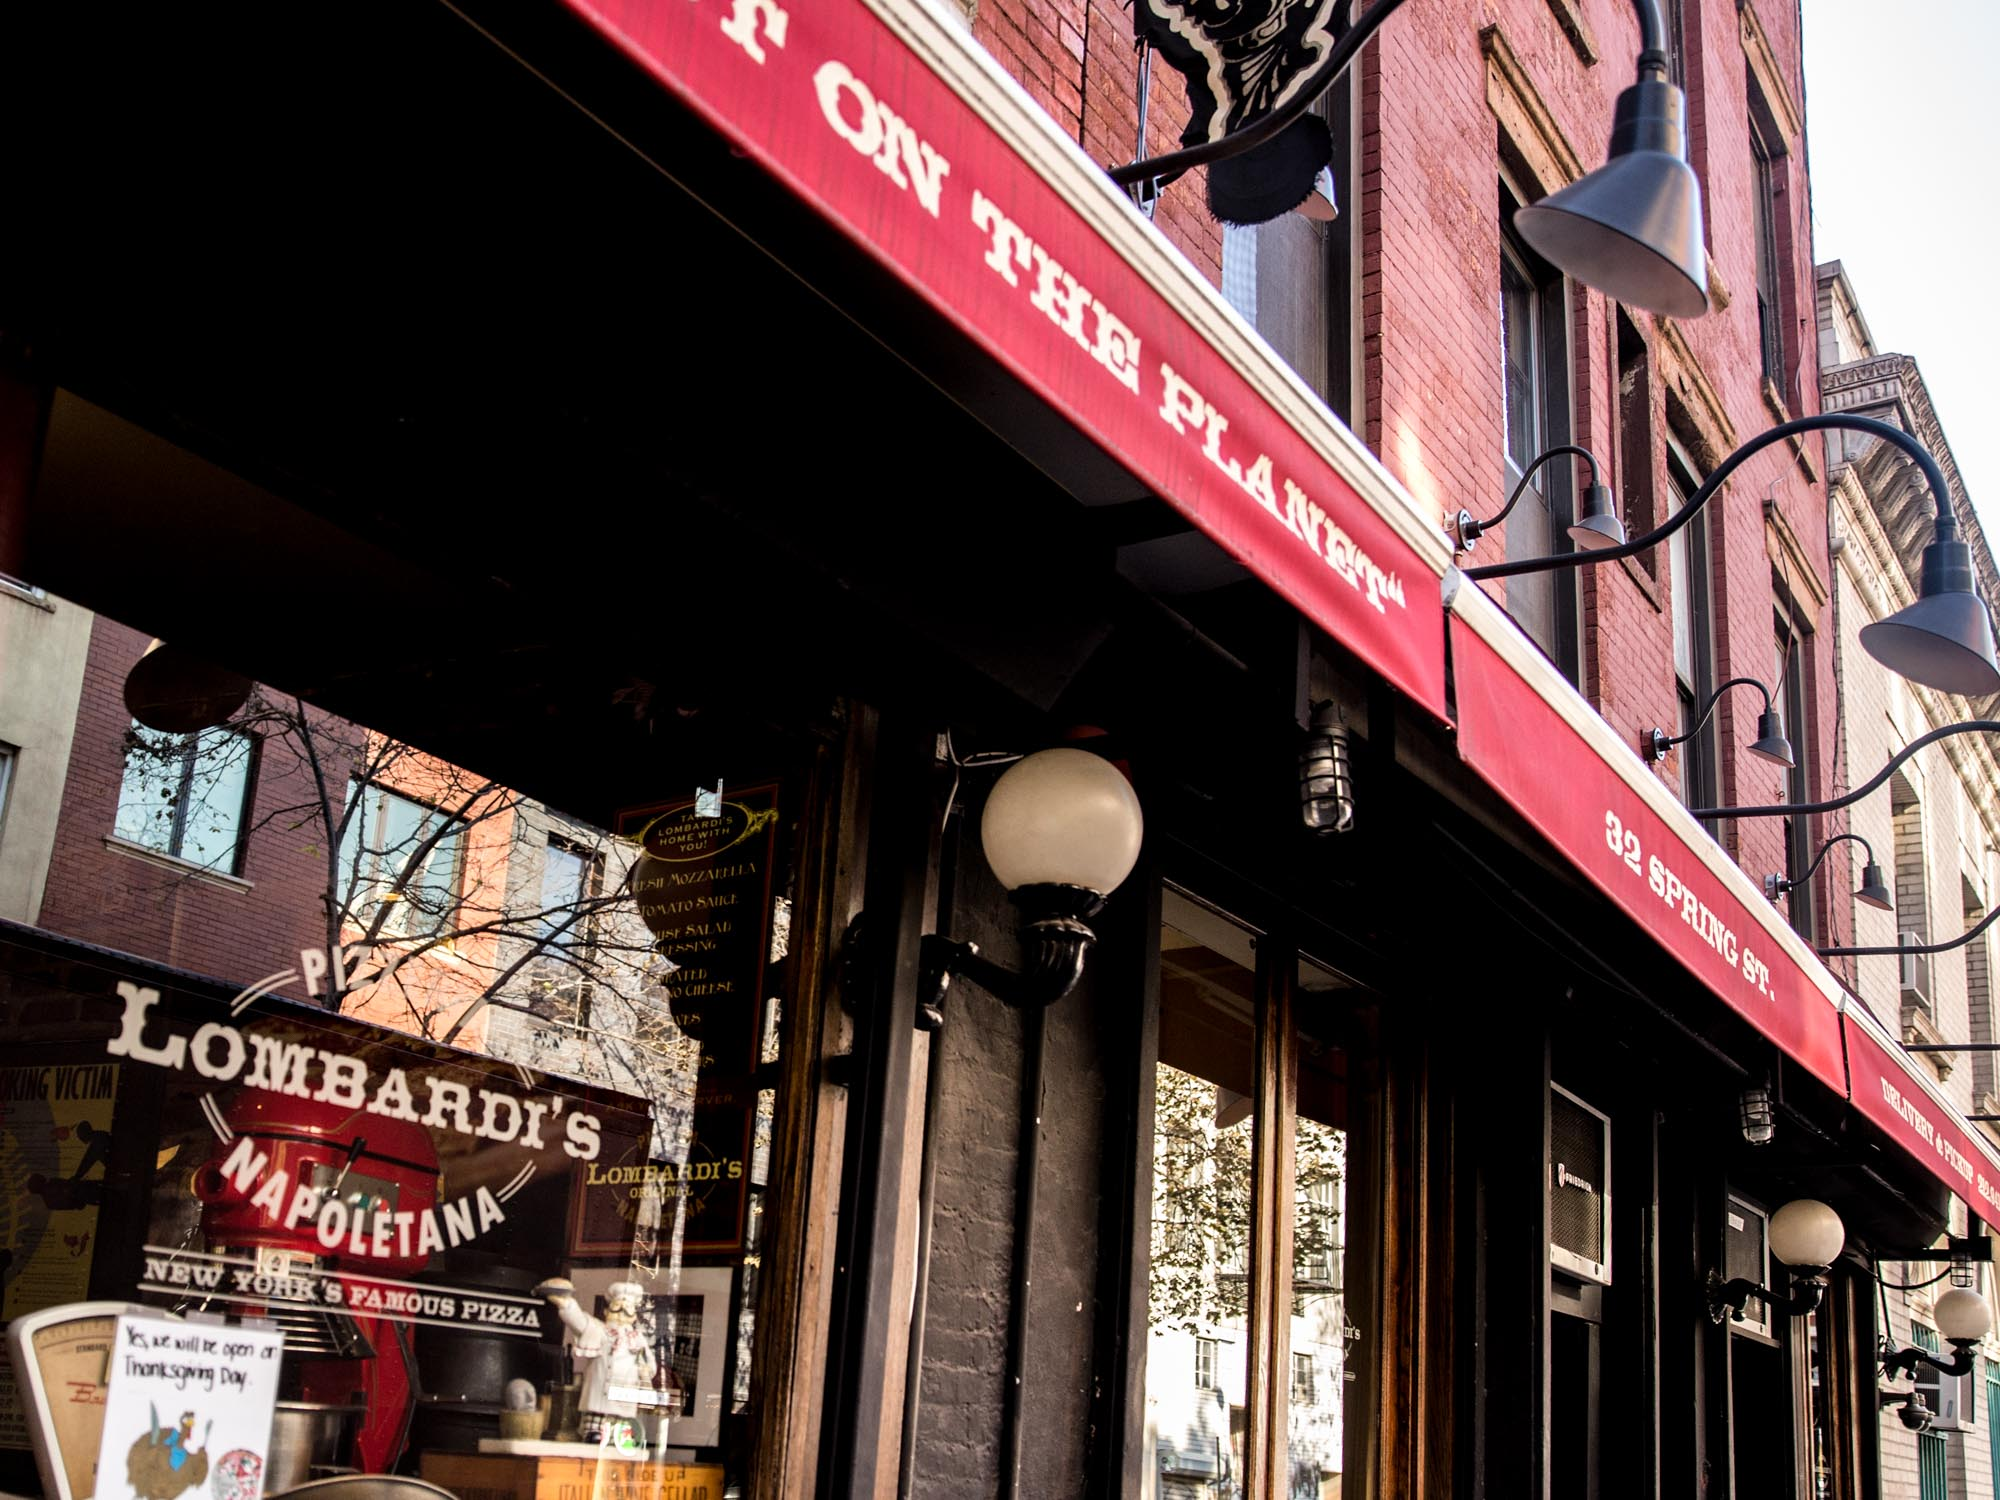 Lombardi's has the oldest pizza in the US